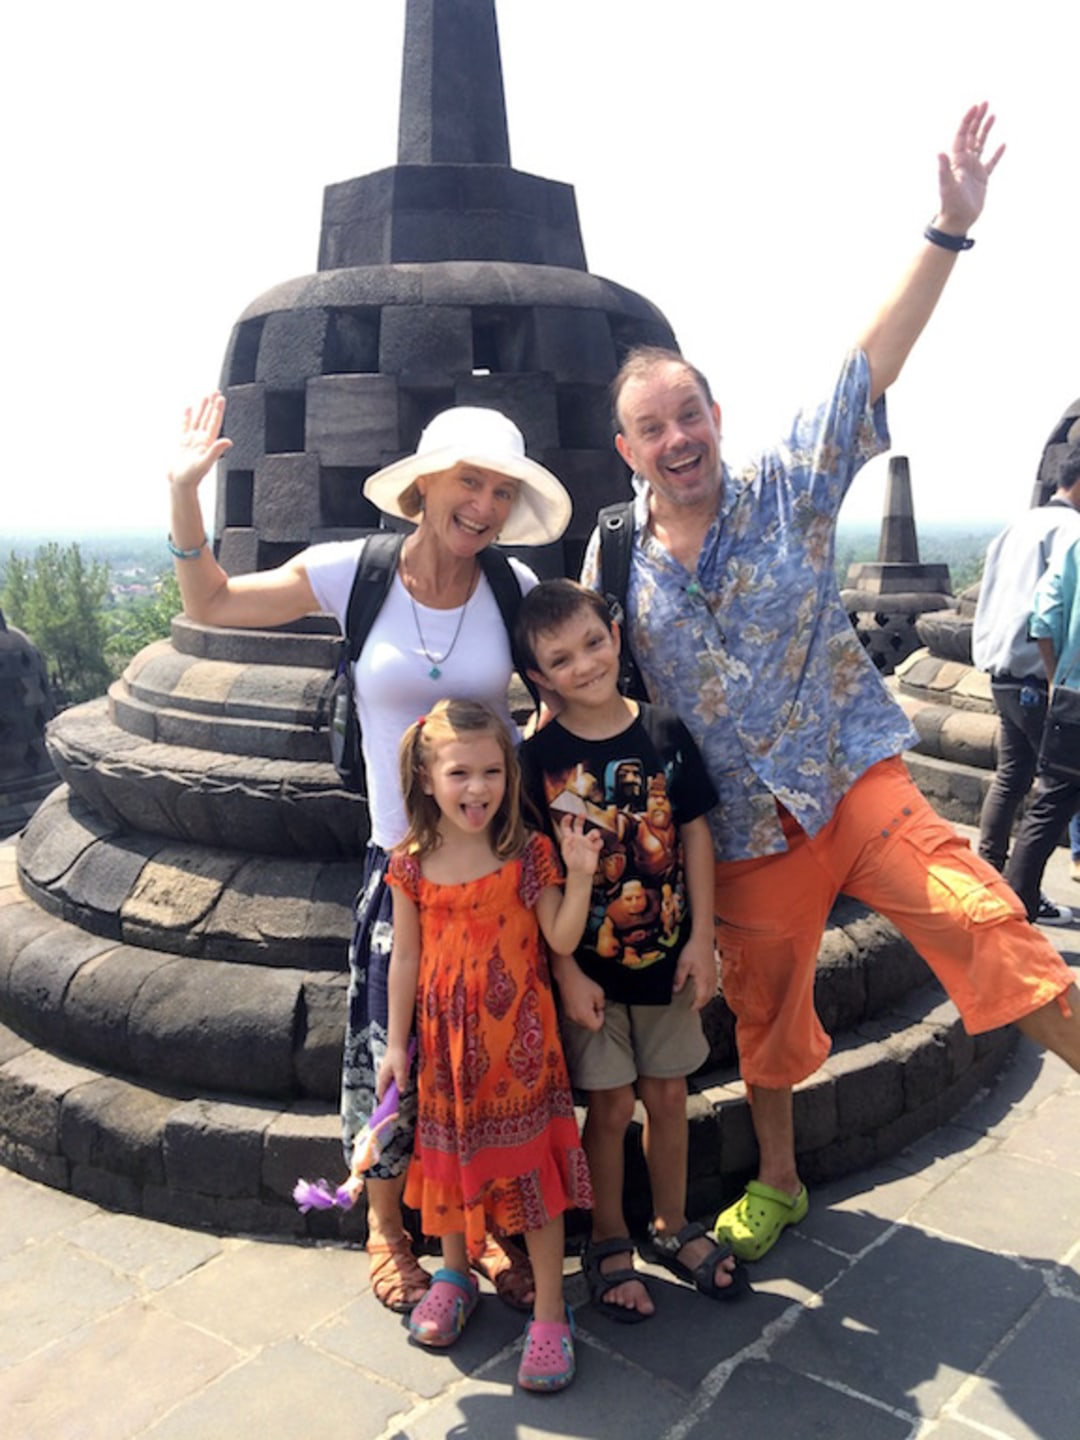 Families Travel The World | SheKnows